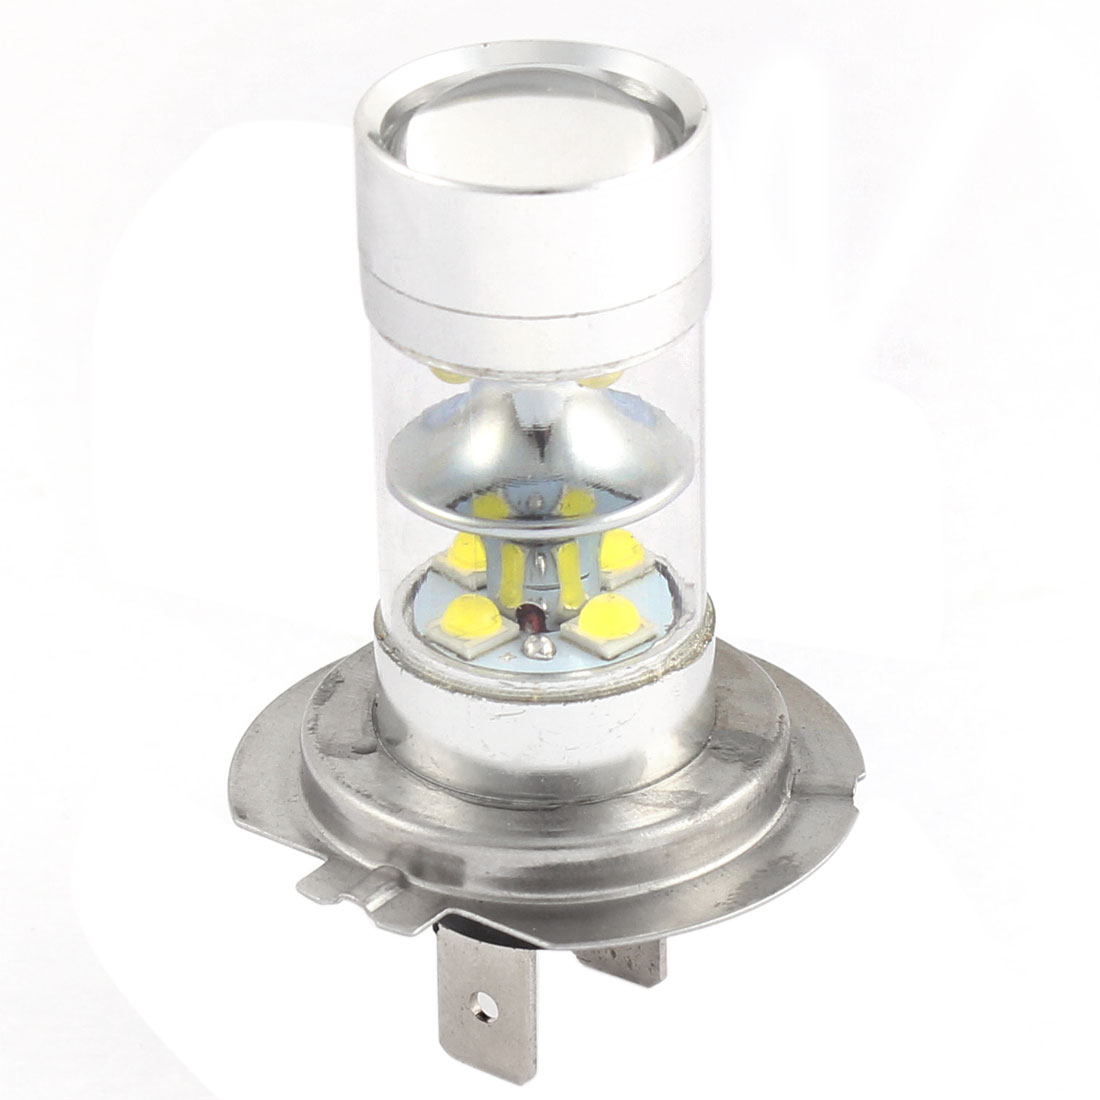 Car H7 White 12 LED Headhight Foglight Driving Lamp Projector Bulb DC 12V 60W